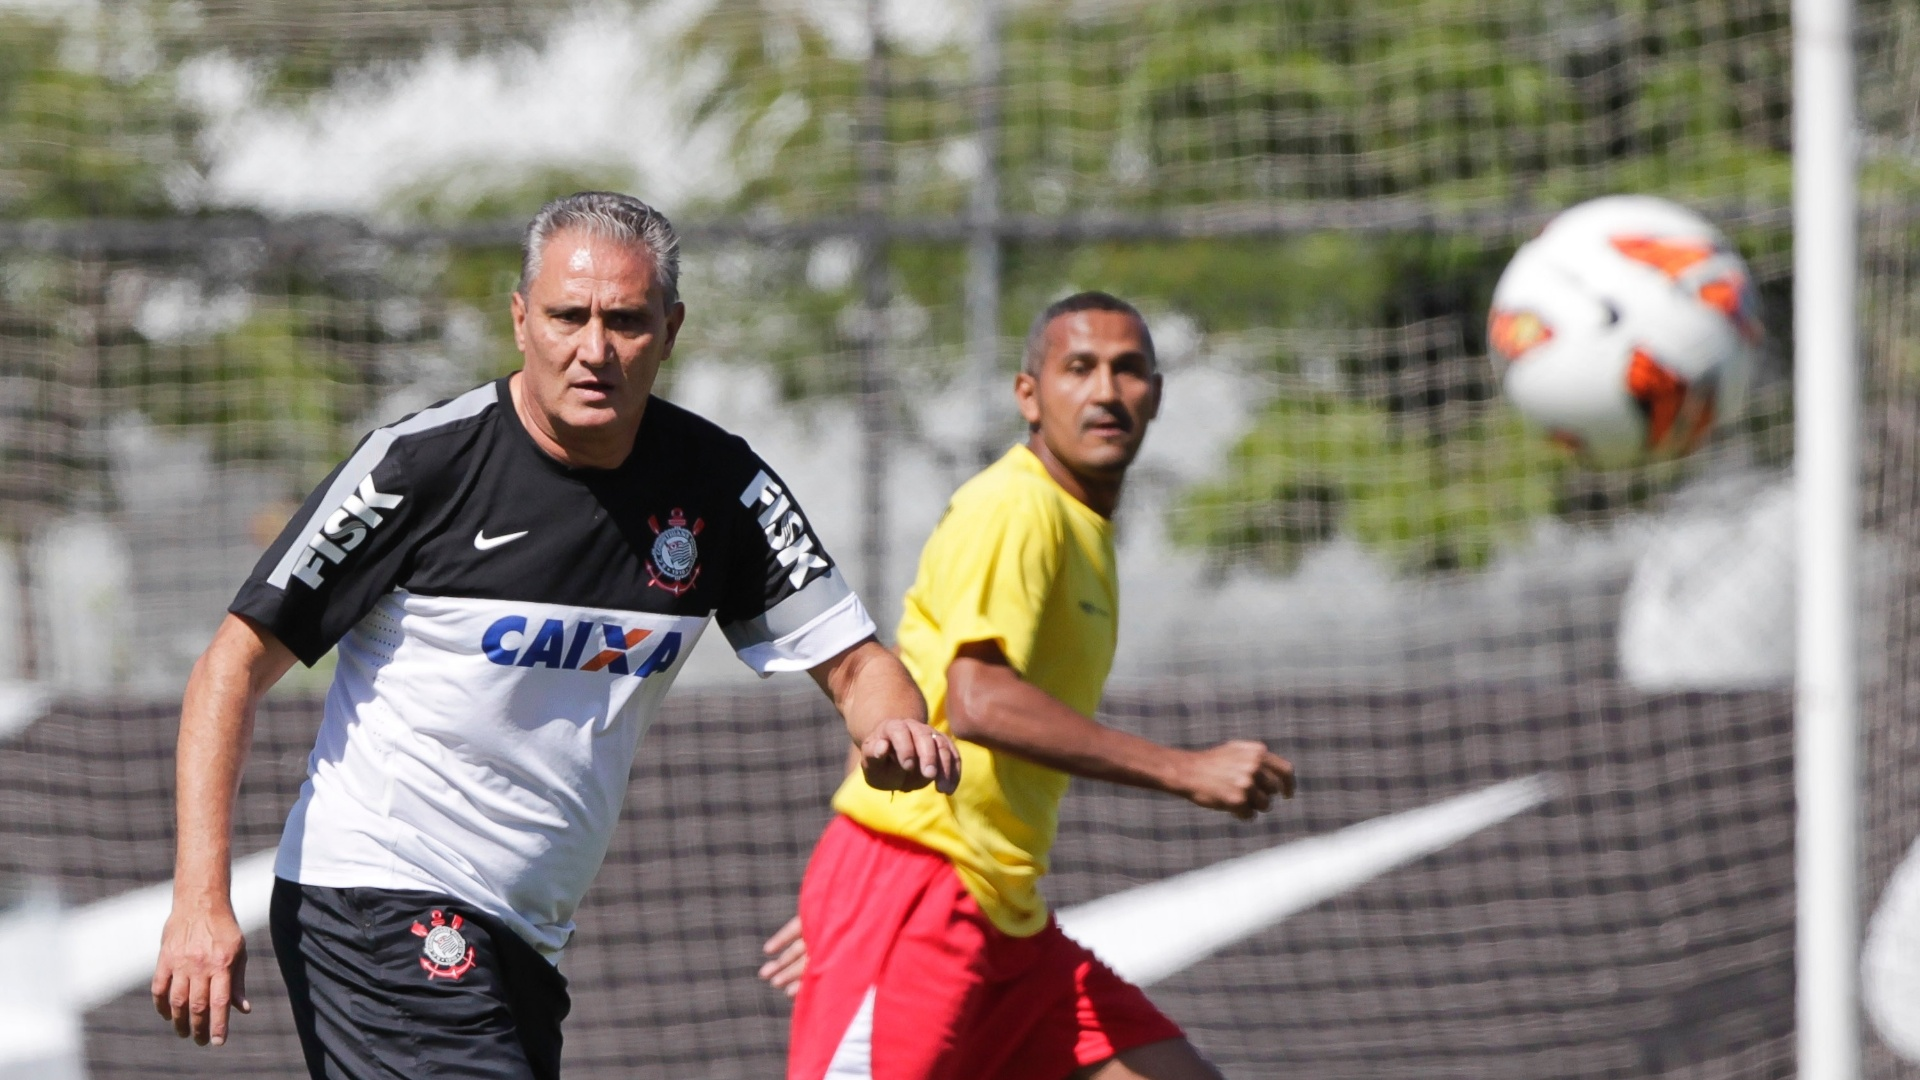 Tite observa a movimentao da bola durante a pelada realizada no CT Joaquim Grava